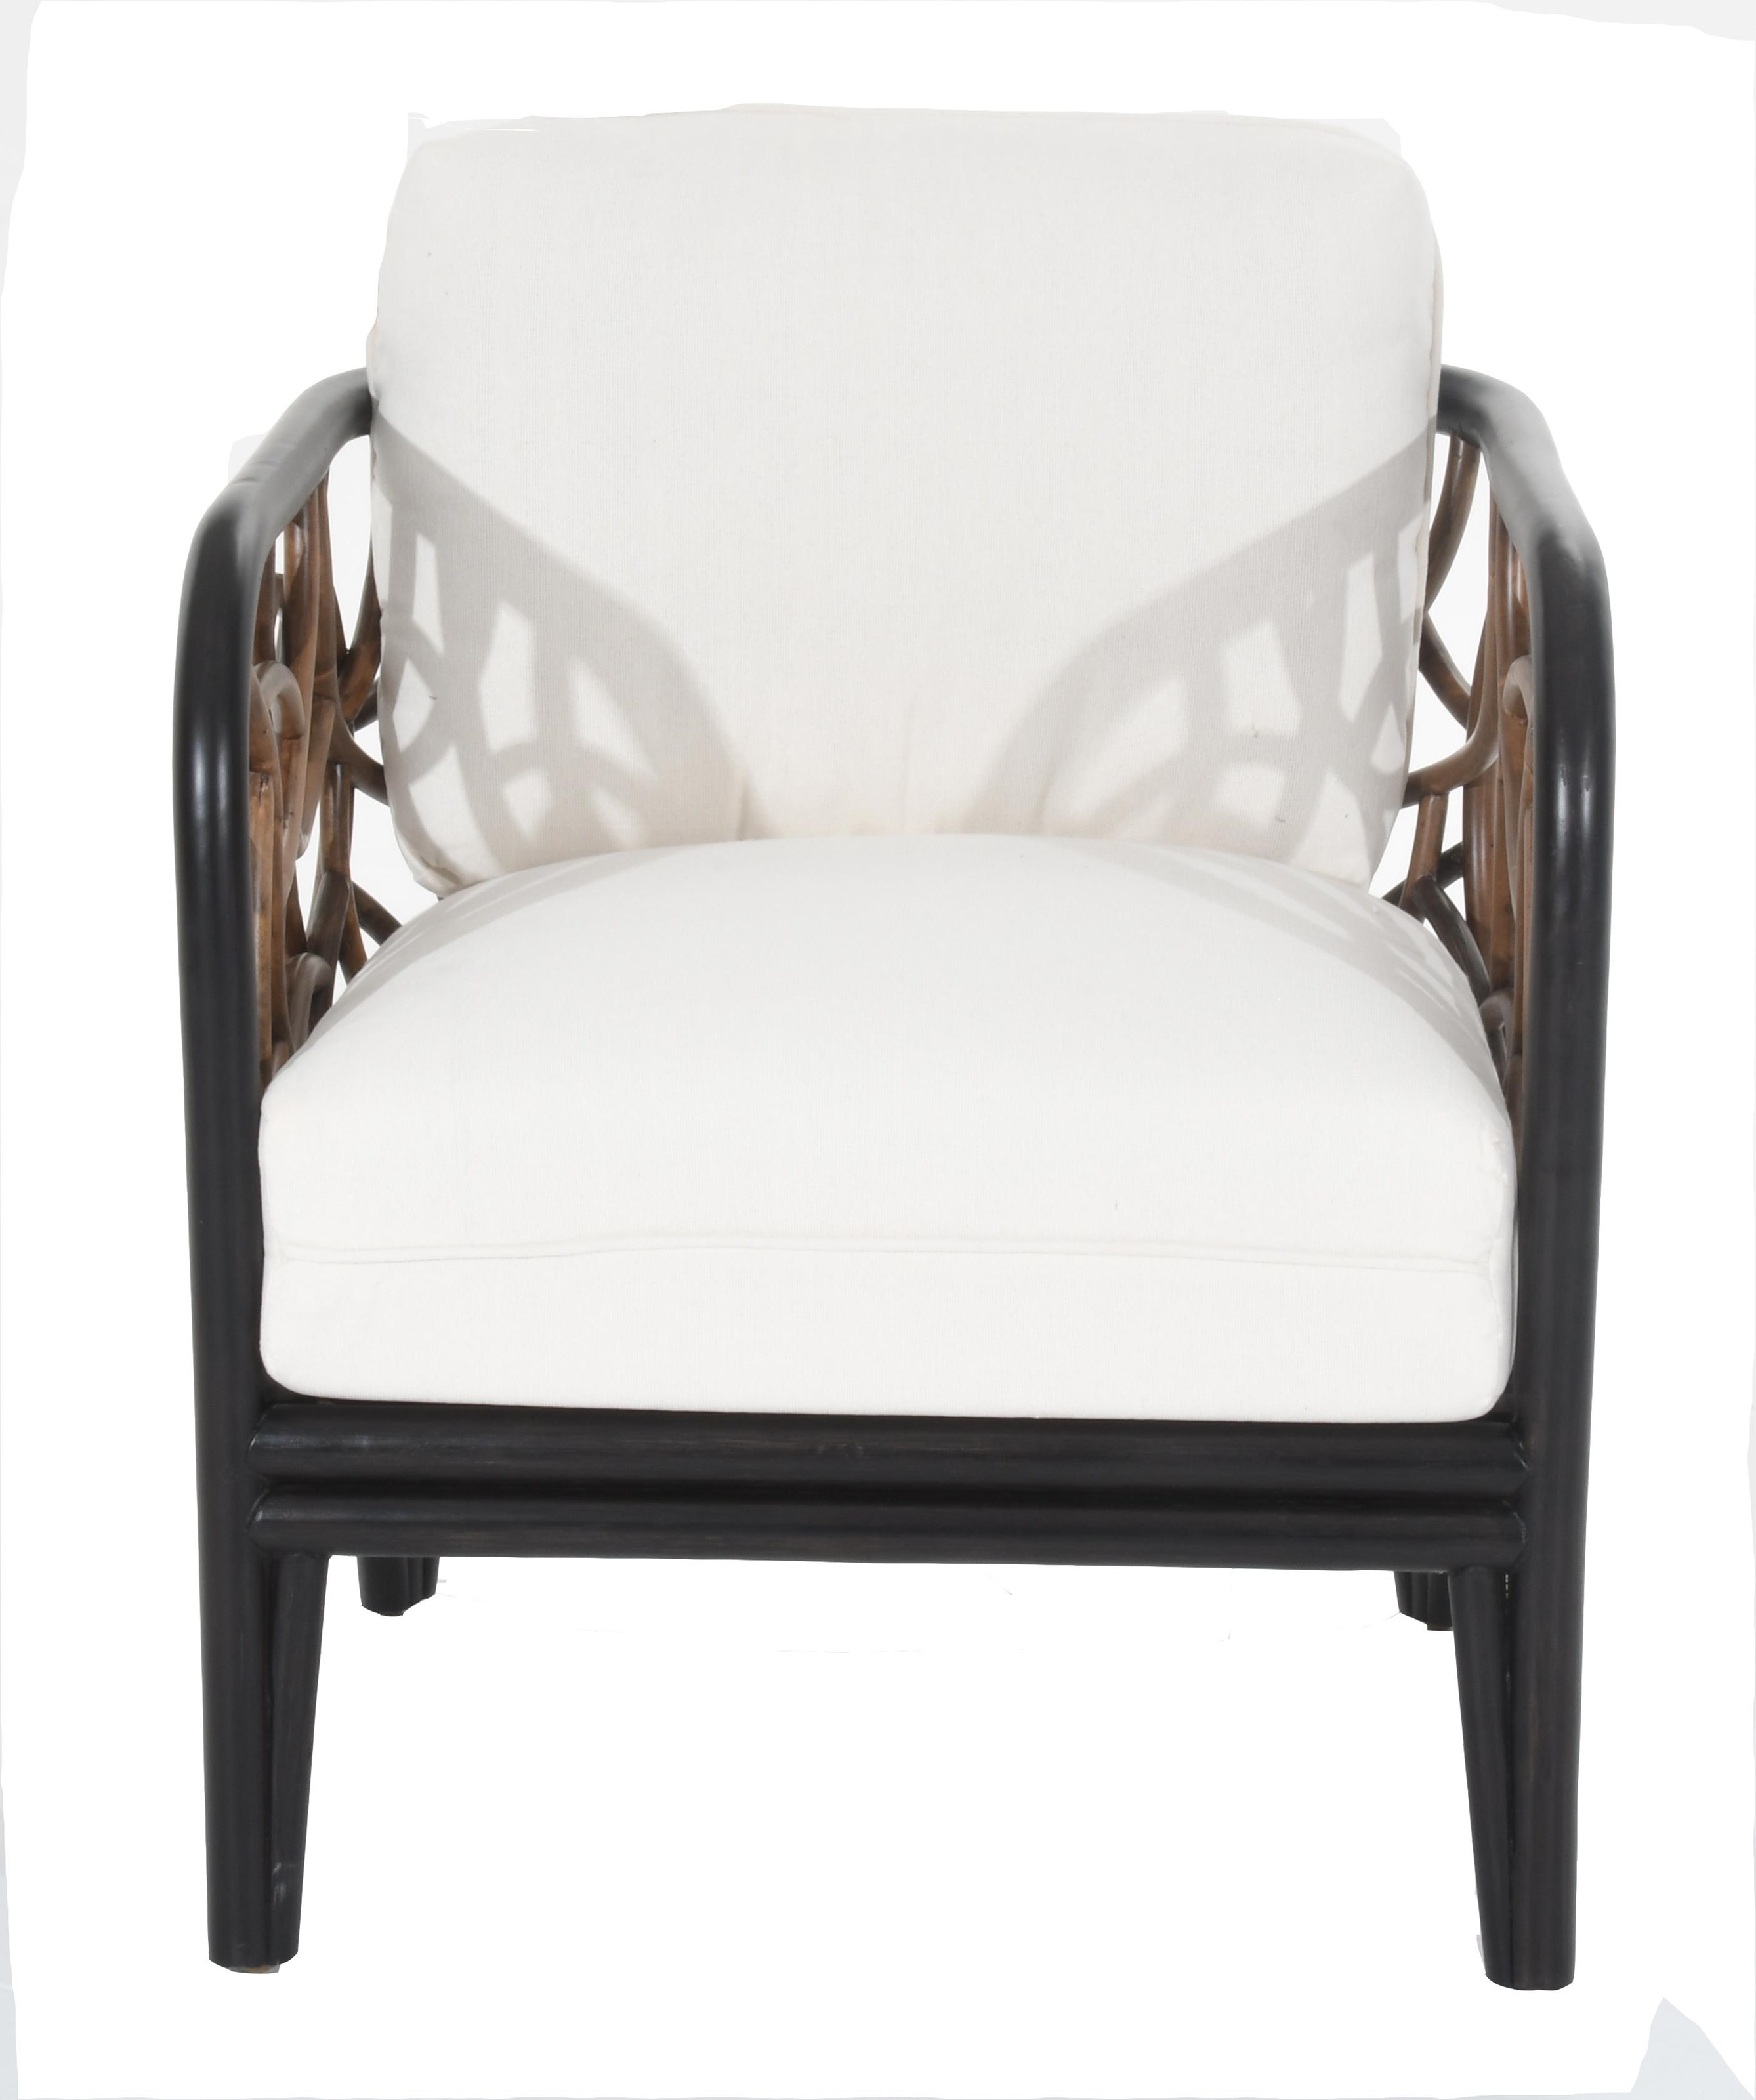 Trinidad Lounge Chair with Cushion by Pelican Reef at Baer's Furniture